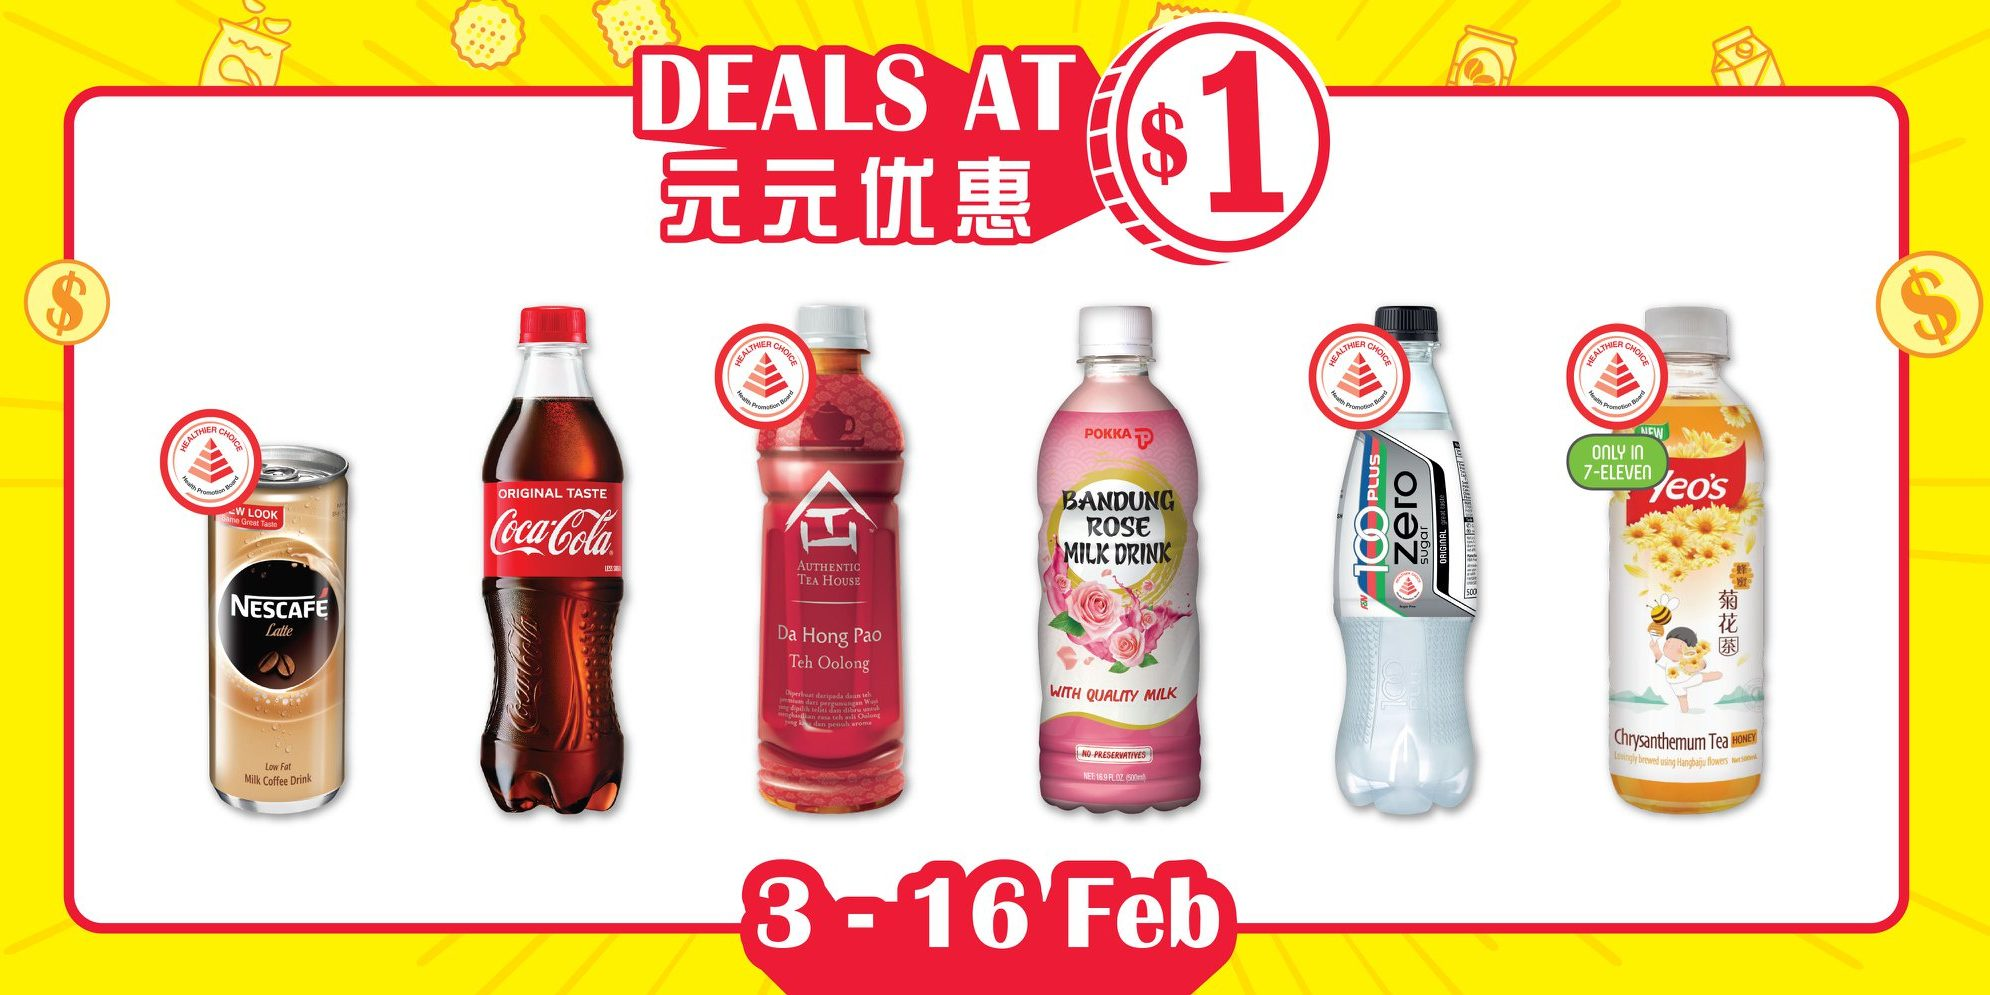 7-Eleven Singapore Deals At $1 Promotion 3-16 Feb 2021